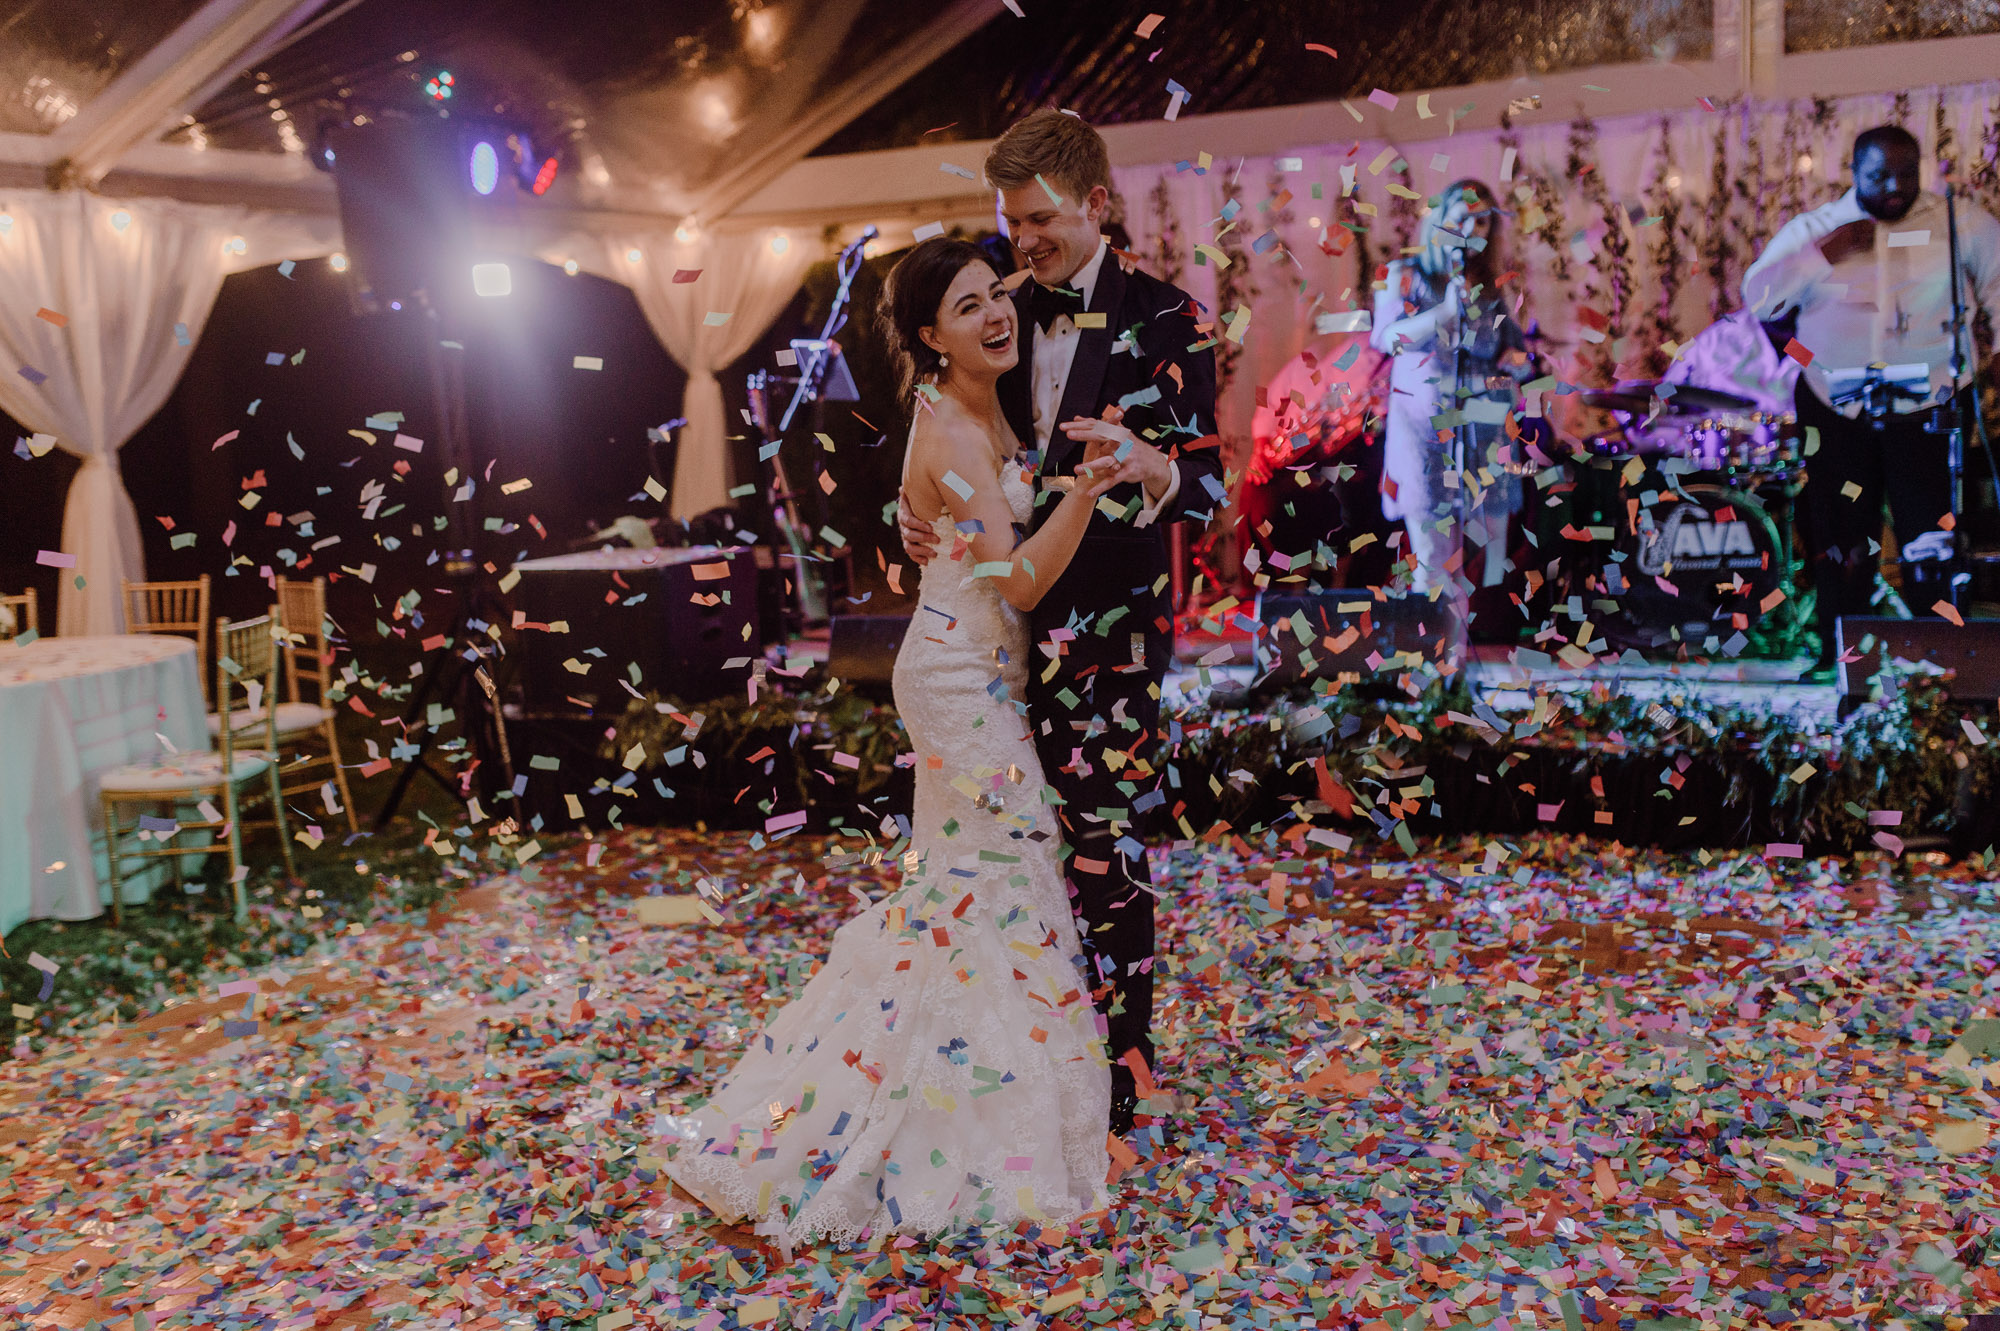 Wedding confetti send off